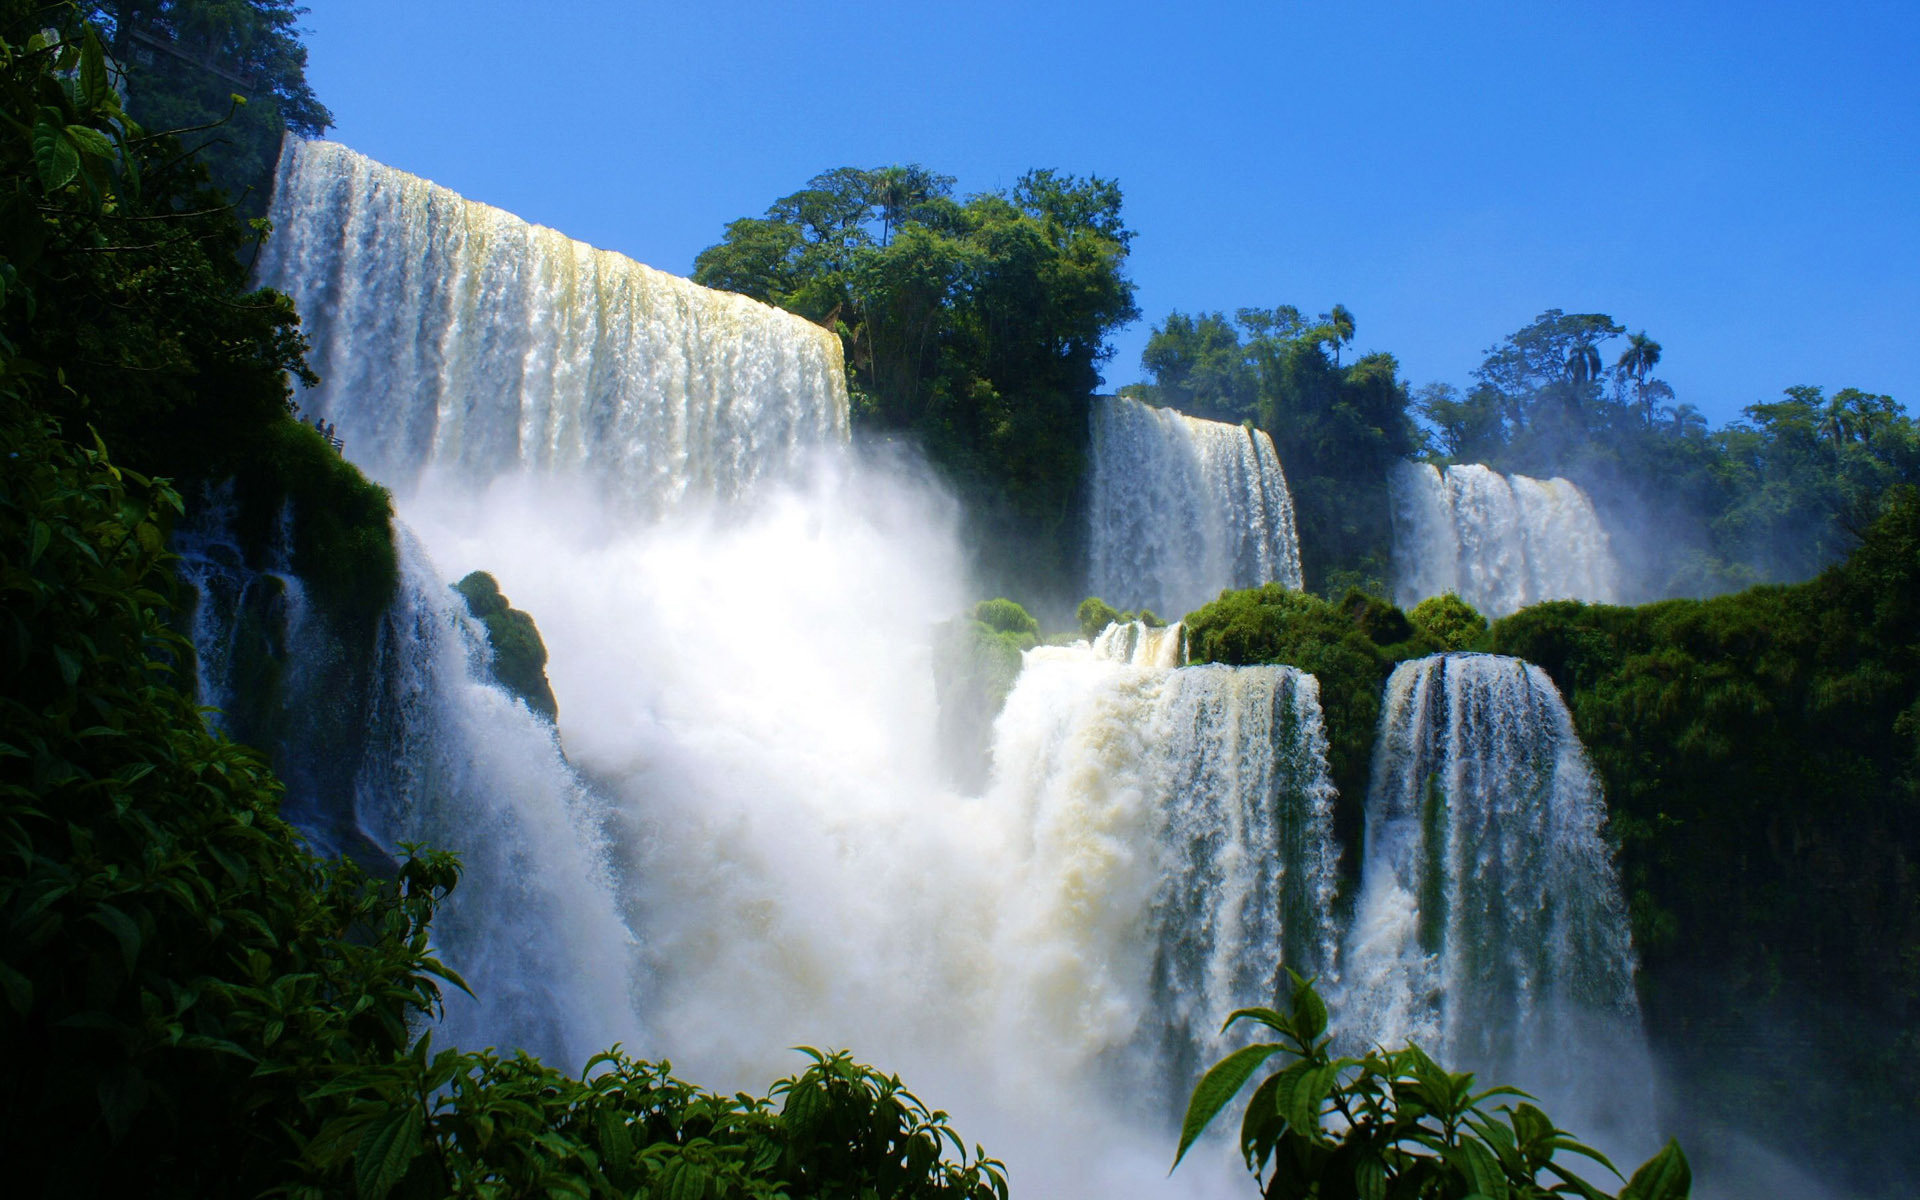 Adventurous weekend getaways with beautiful waterfalls for 3d wallpaper for home in bangalore